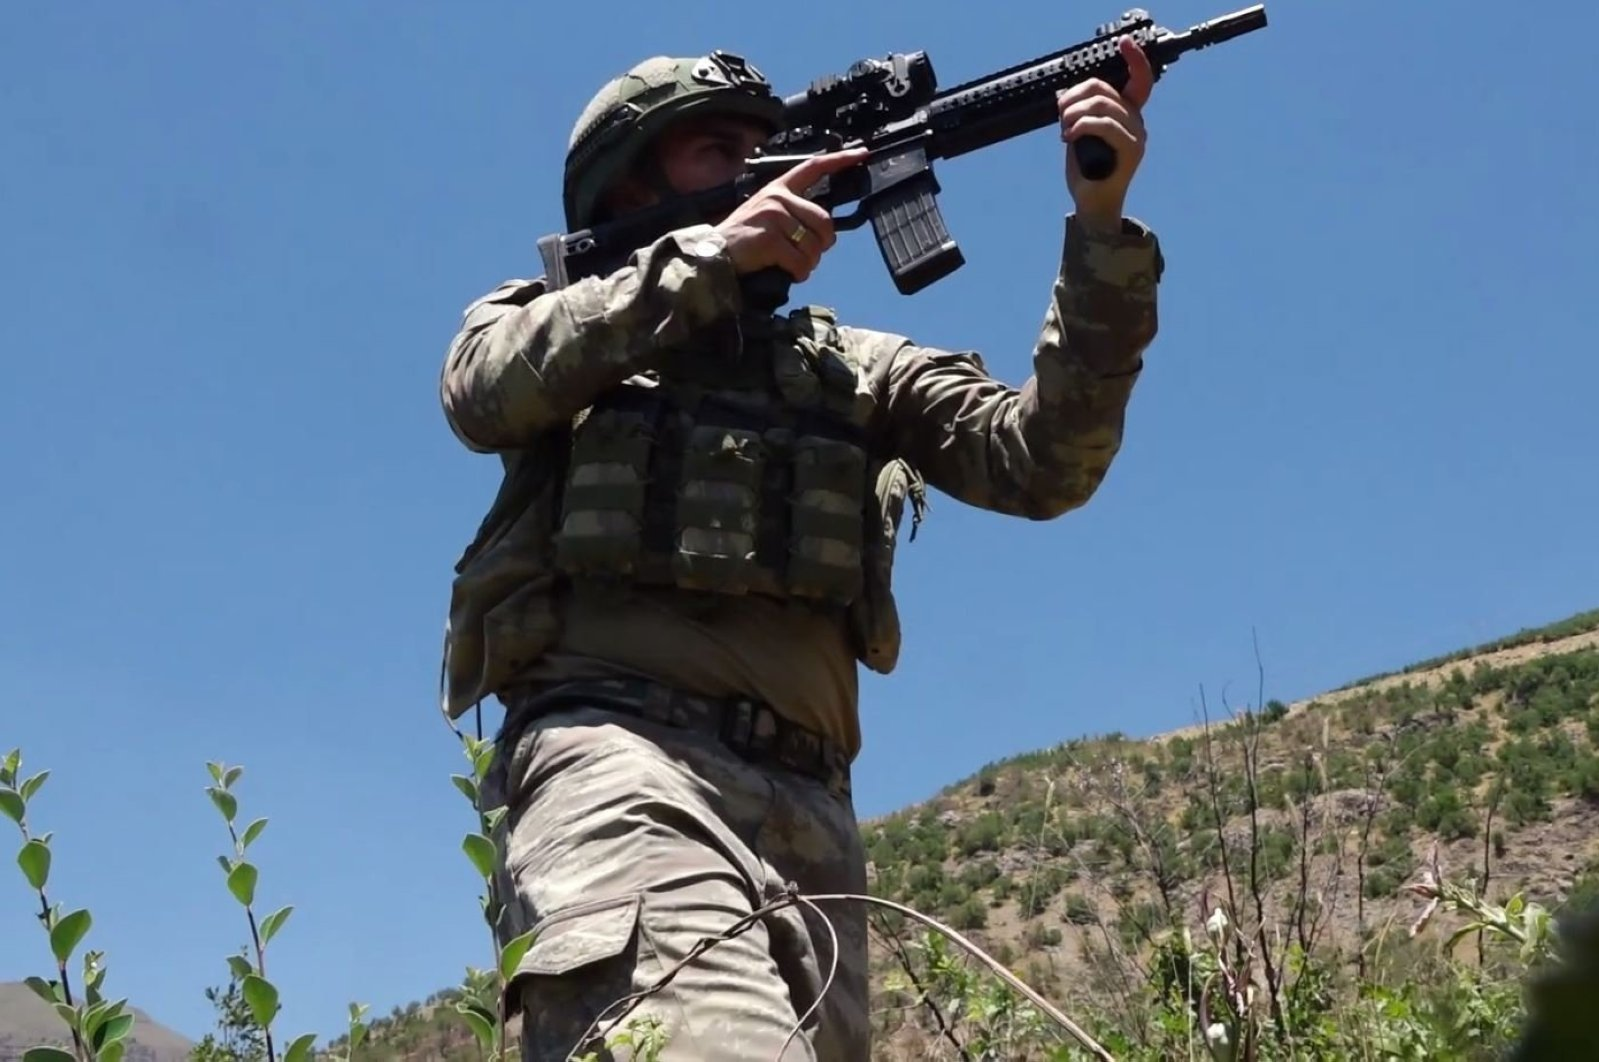 A Turkish soldier holds a gun in this undated photo, in an undisclosed location. (DHA Photo)